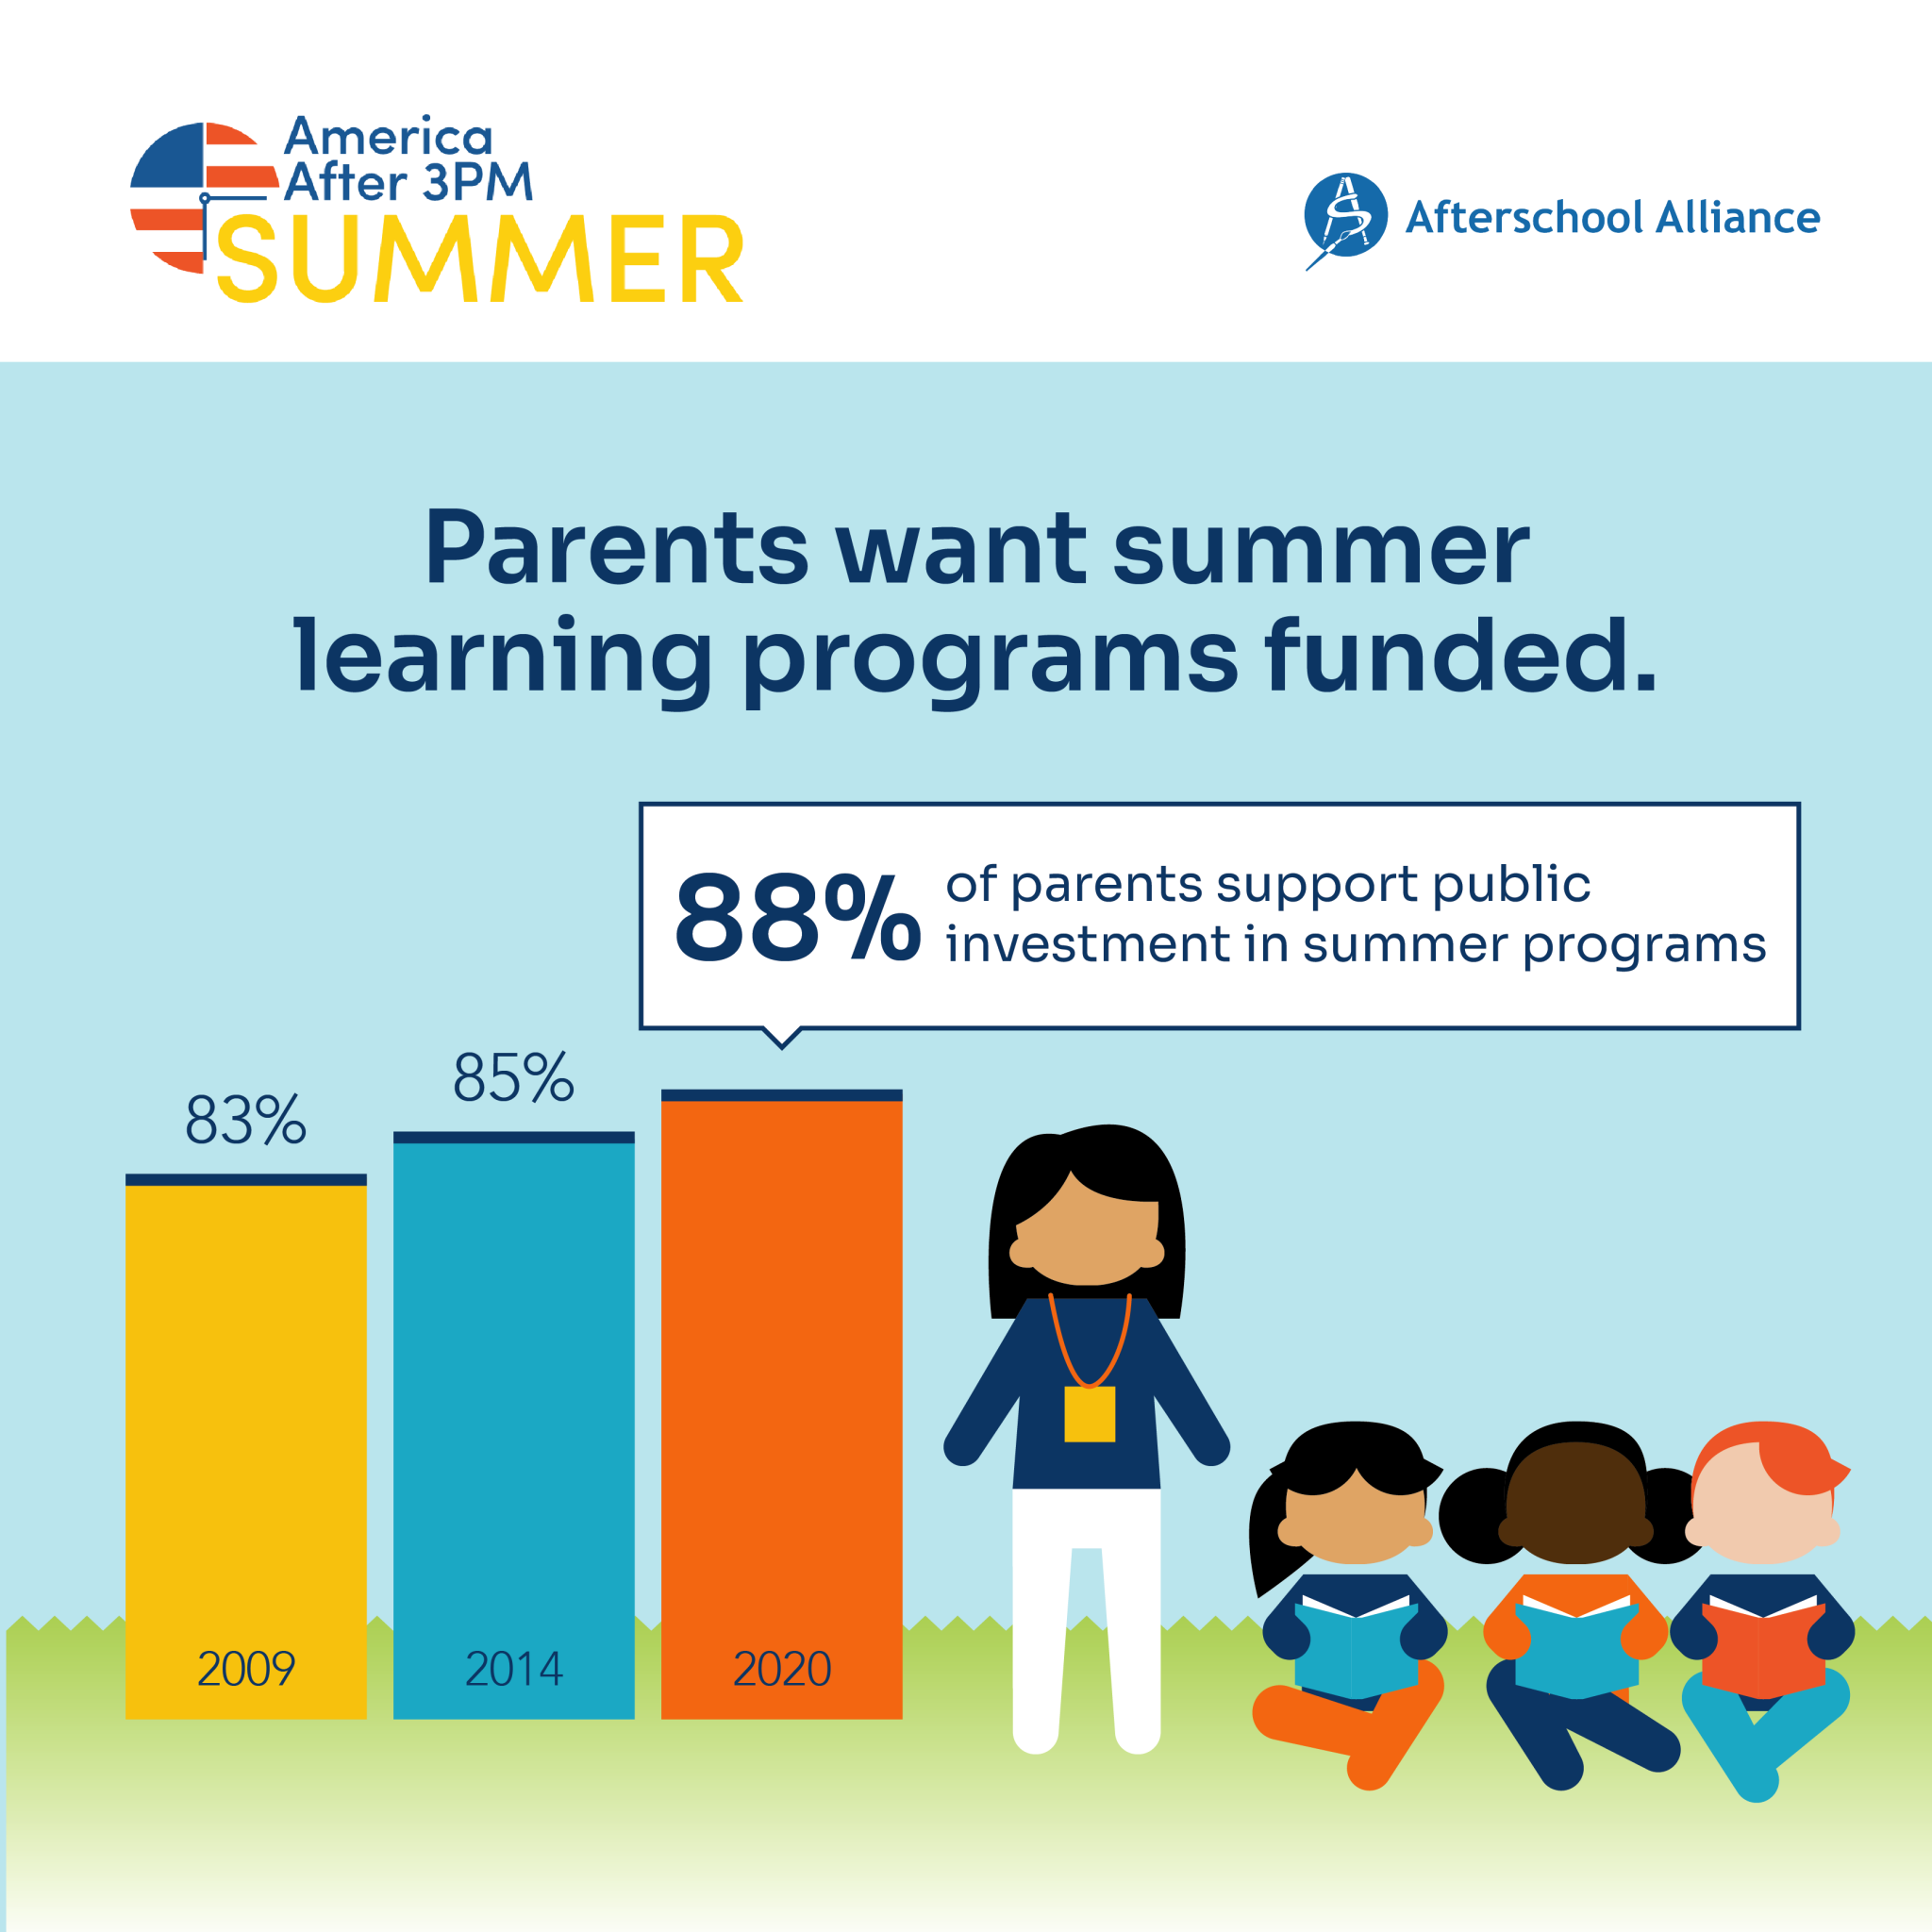 Top 5 Findings from the America After 3PM Special Report, Time for a Game-Changing Summer